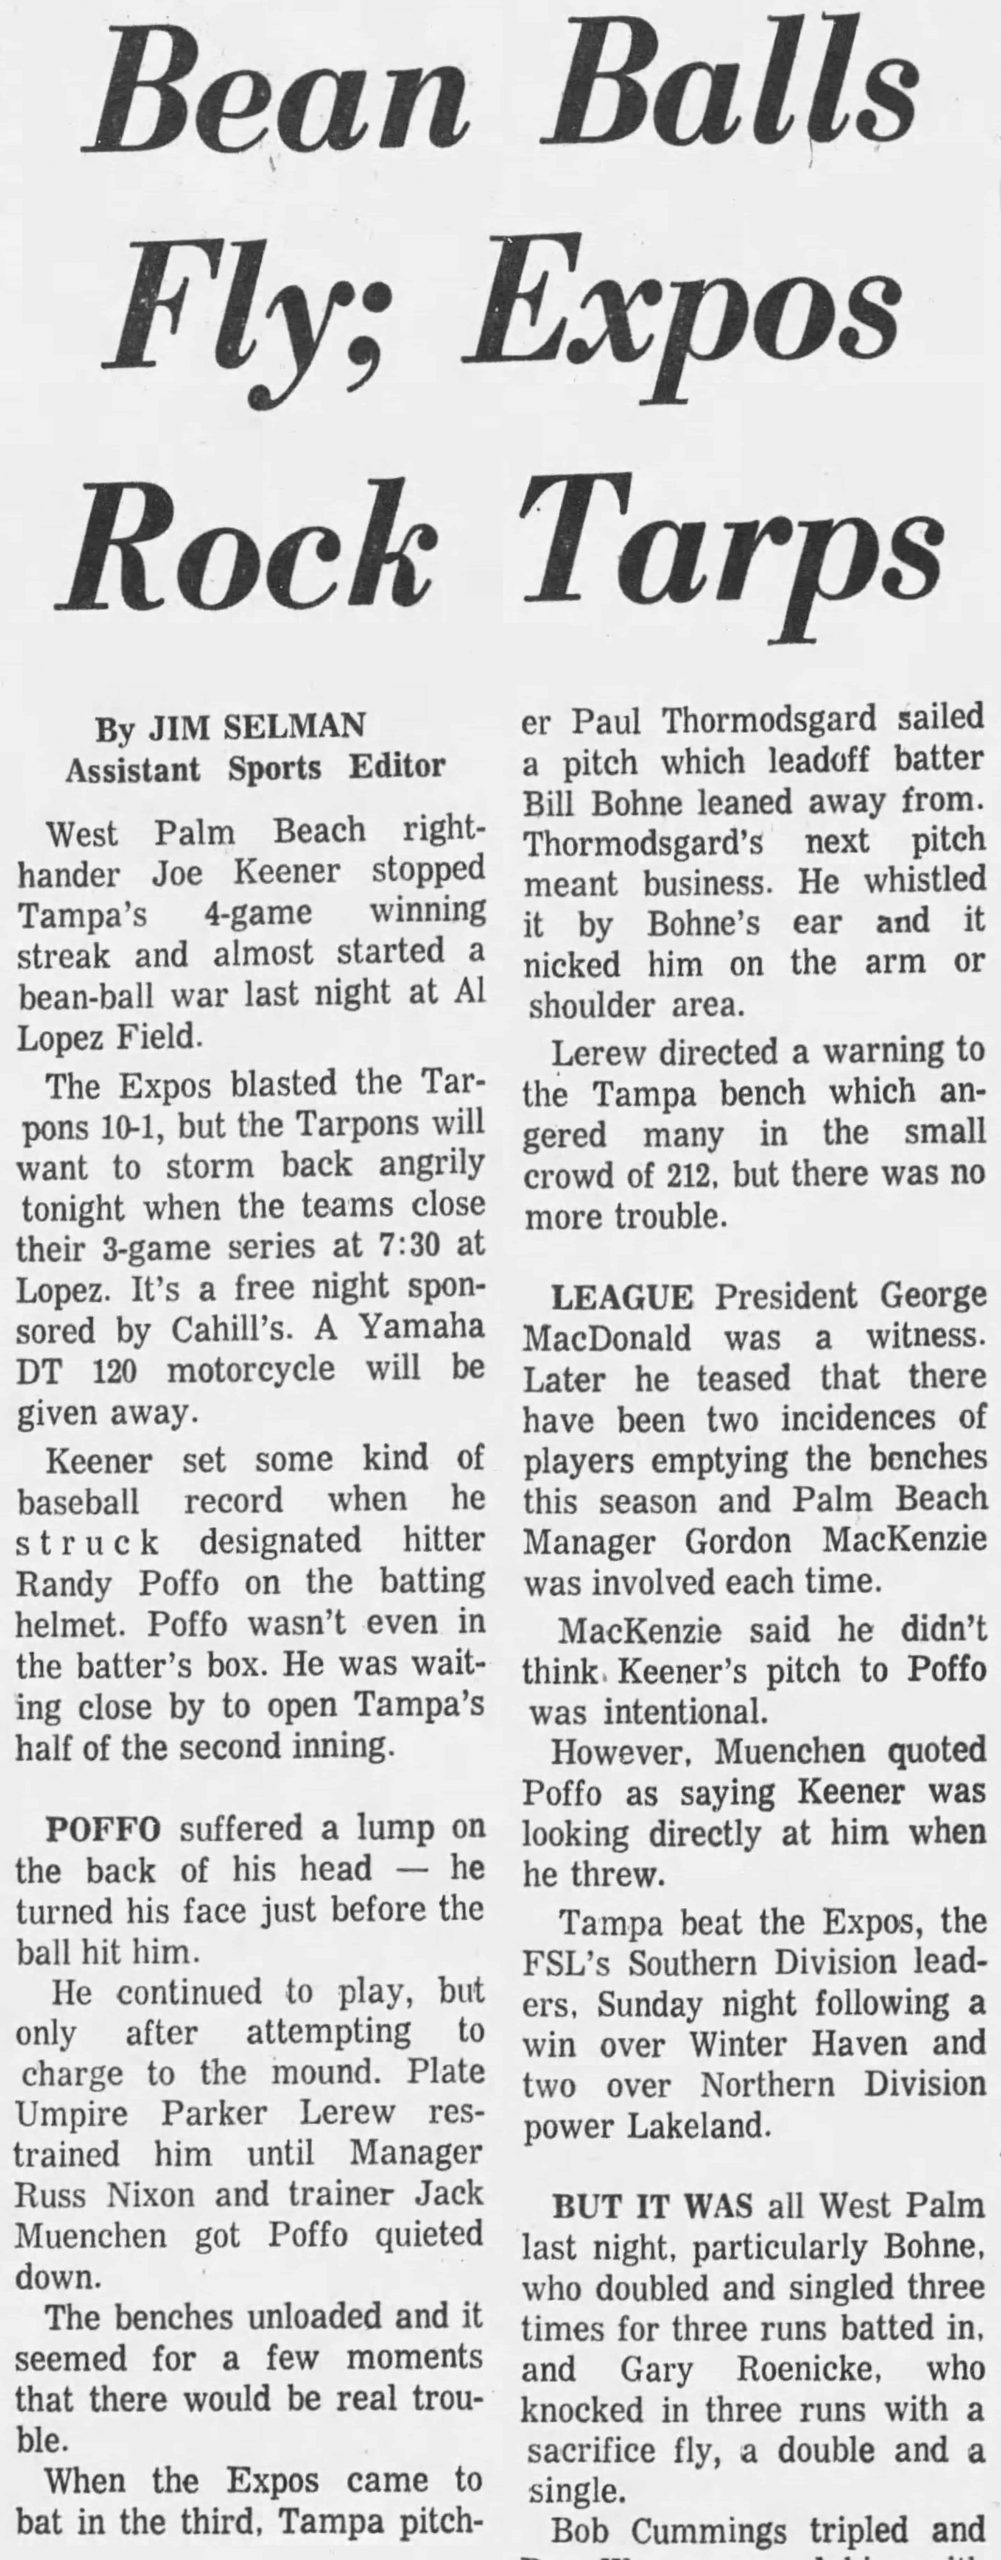 News article from the Tuesday, April 30, 1974 edition of The Tampa Tribune sharing the story of the time Randy Poffo charged the mound after getting hit in the helmet by a ball.